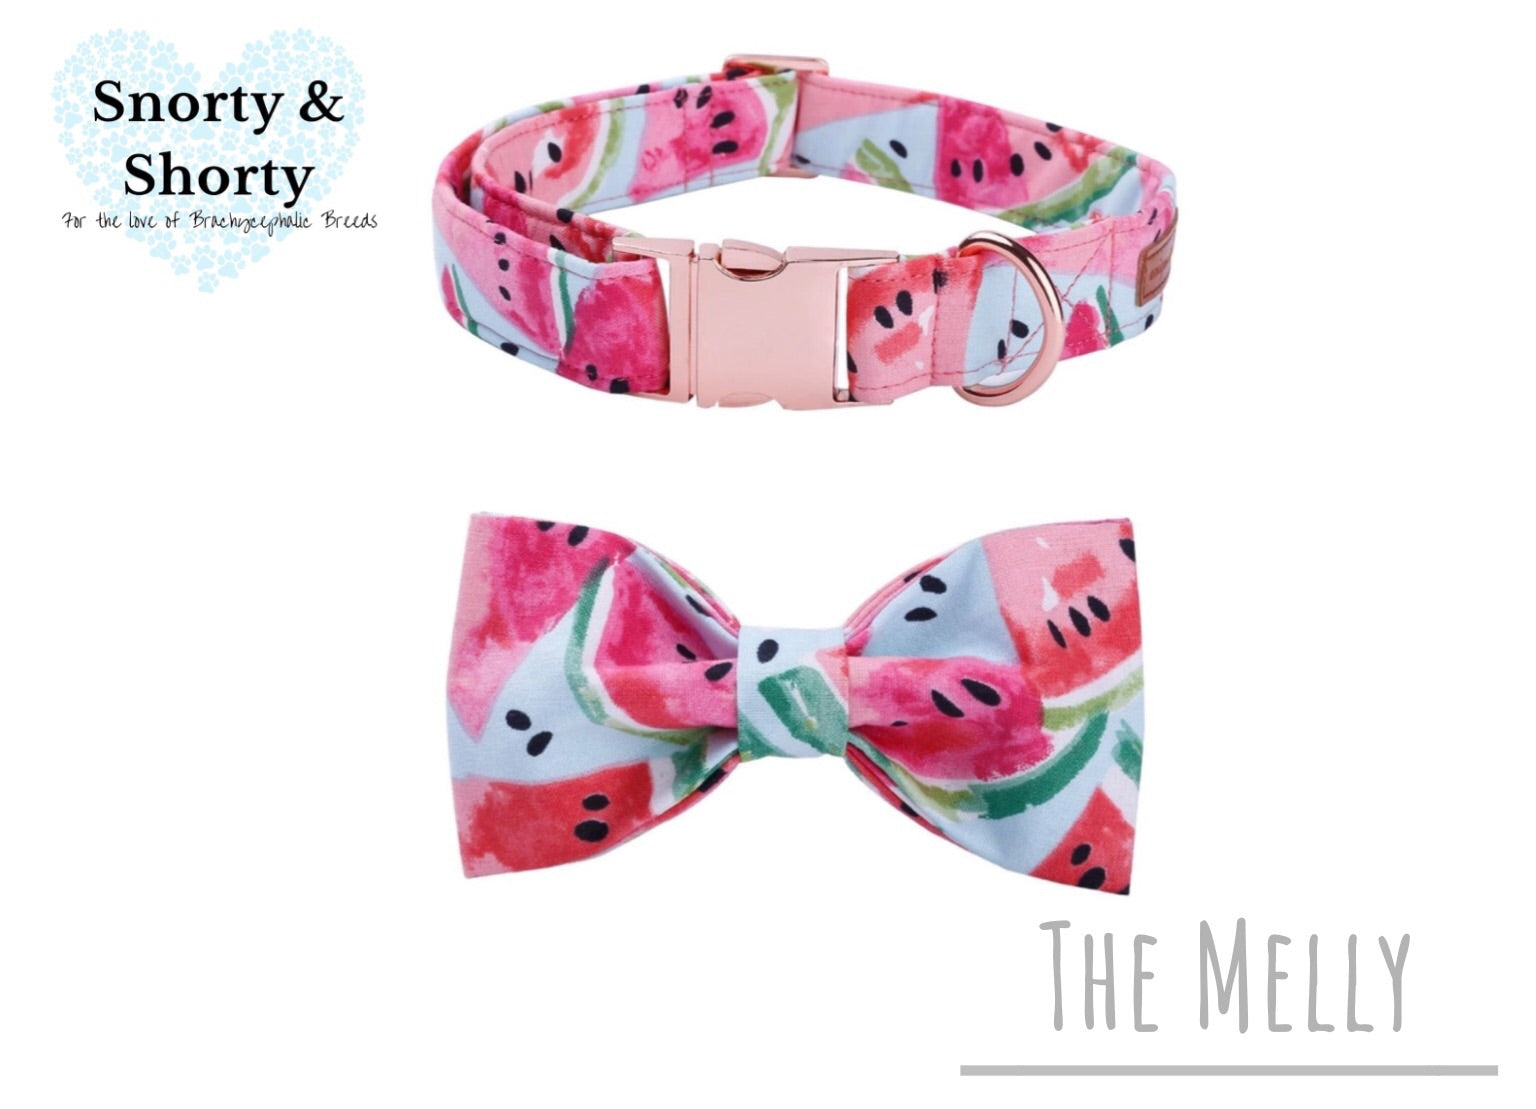 The Melly Collection